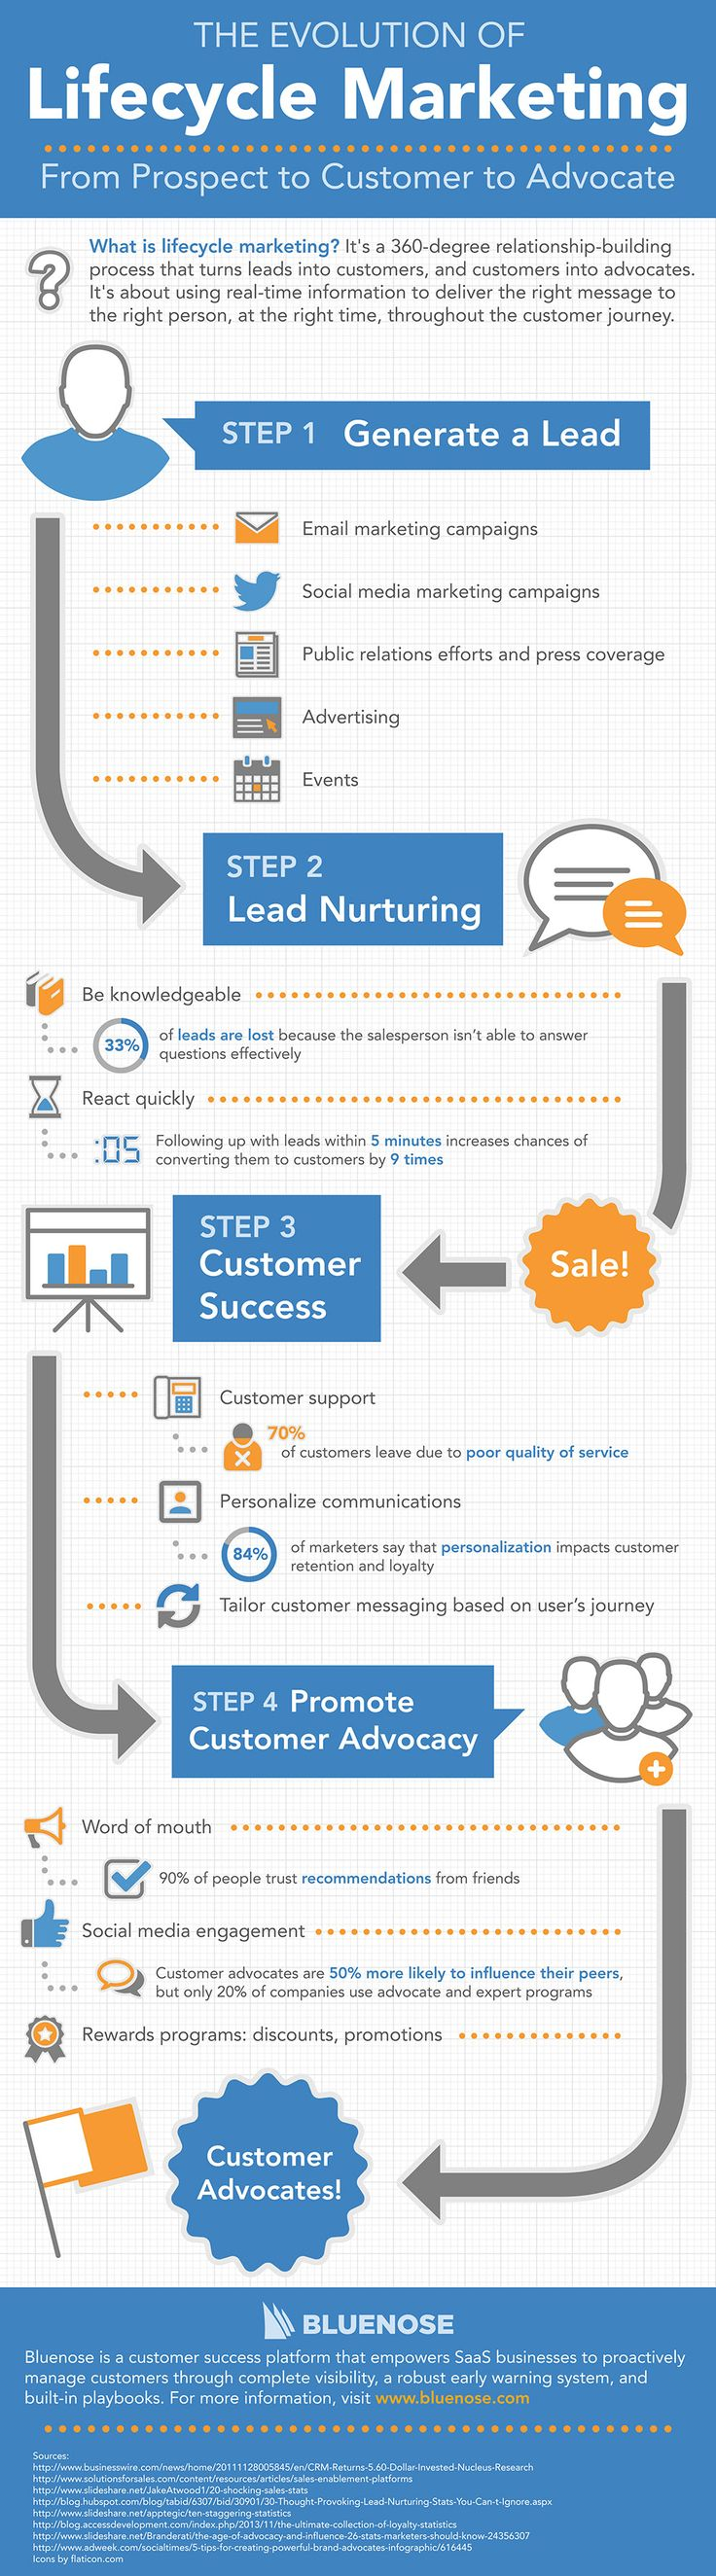 The Evolution of Lifecycle Marketing [INFOGRAPHIC] | Social Media Today